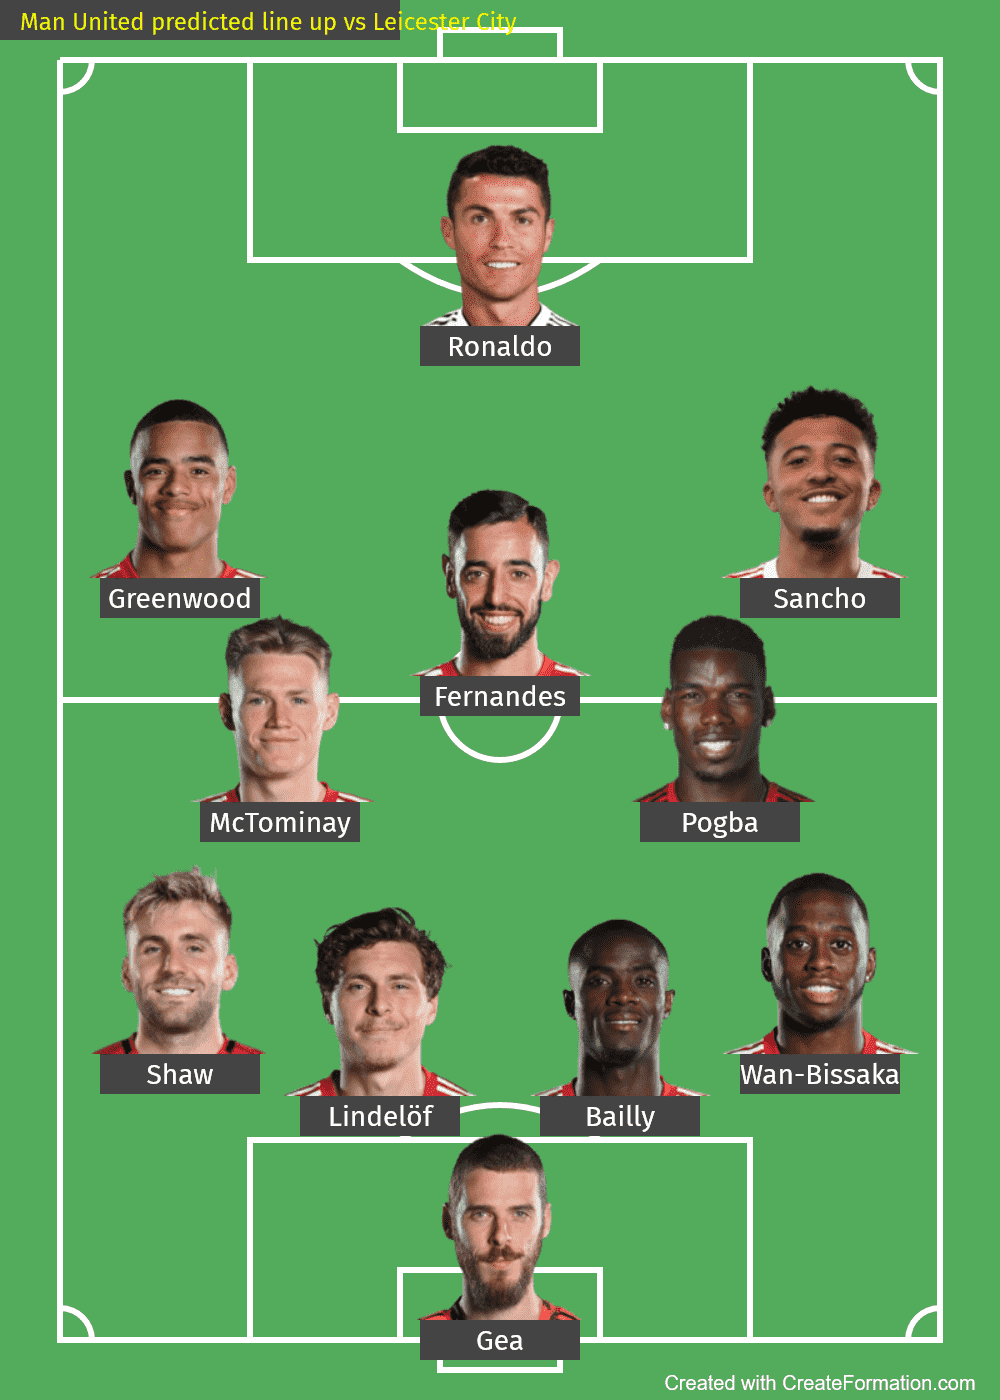 Man United predicted line up vs Leicester City